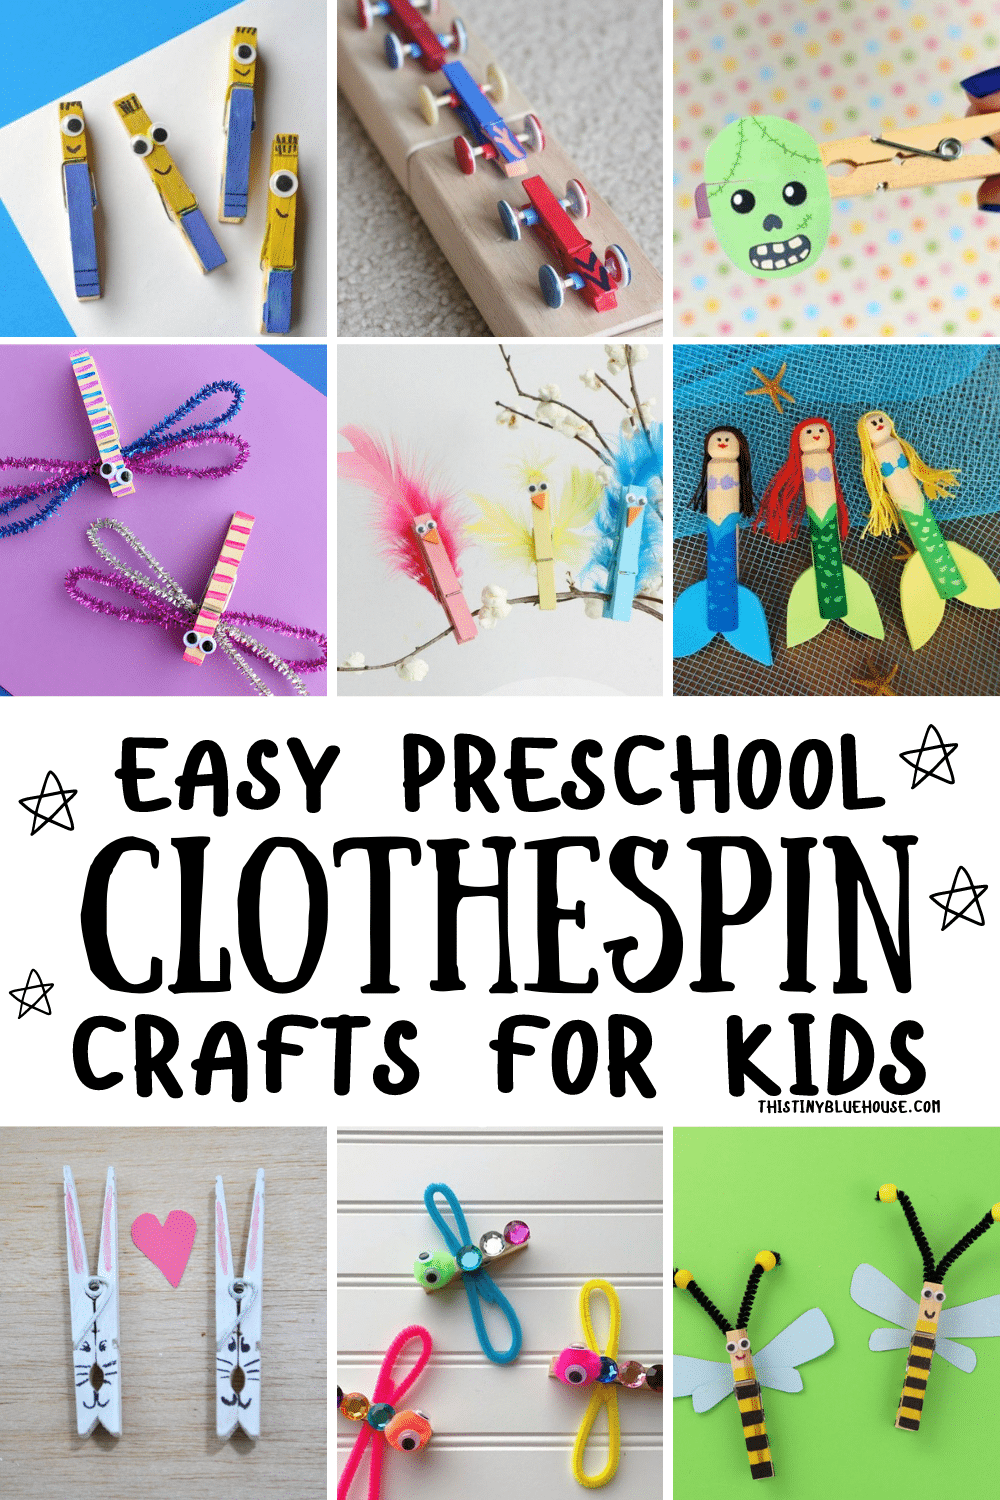 Easy Preschool Clothespin Crafts For Kids